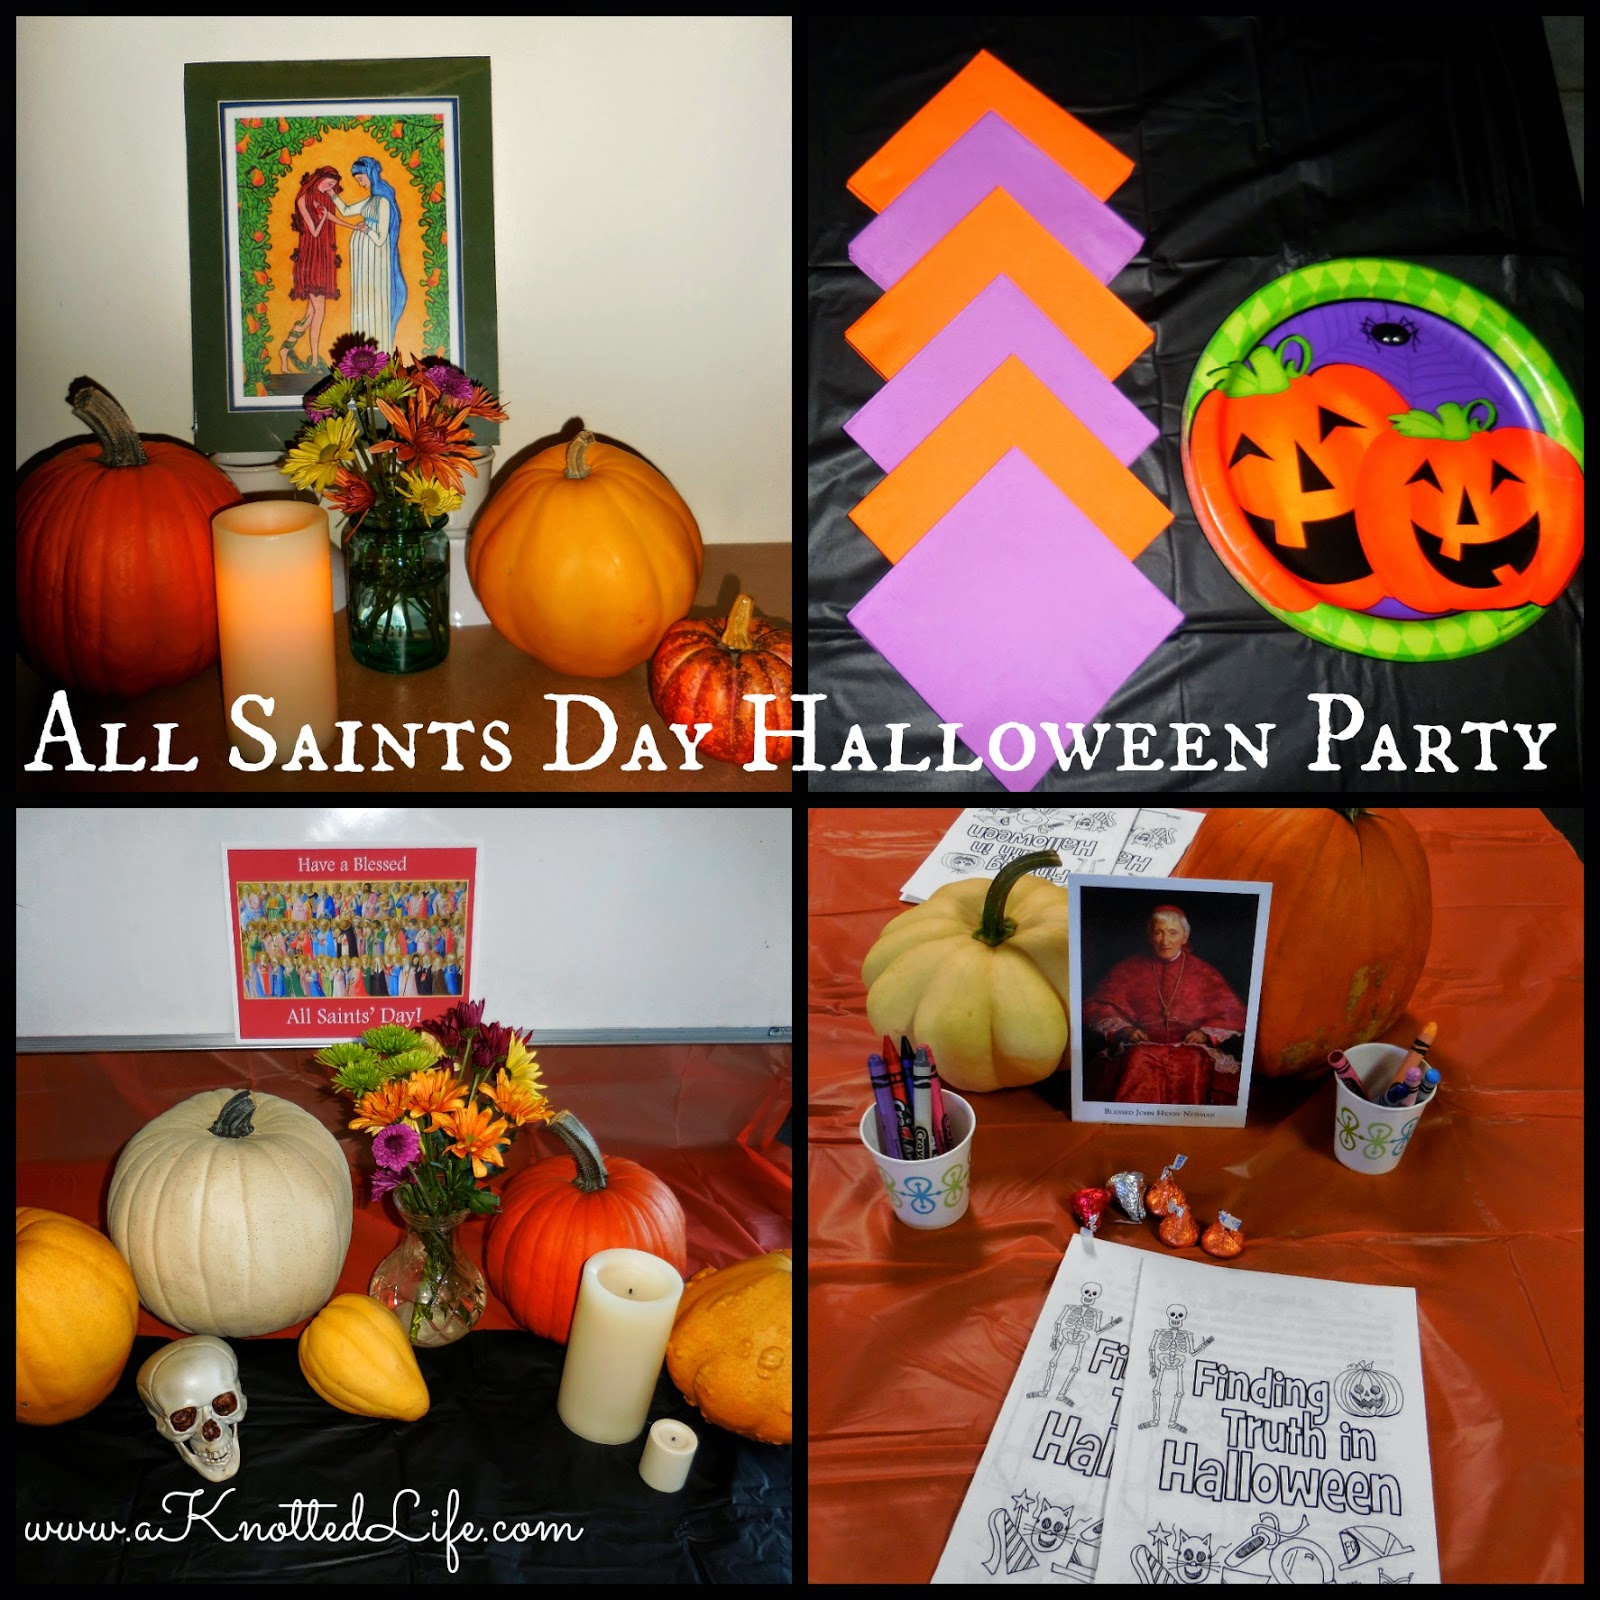 A Knotted Life: All Saints' Day Party ReCap